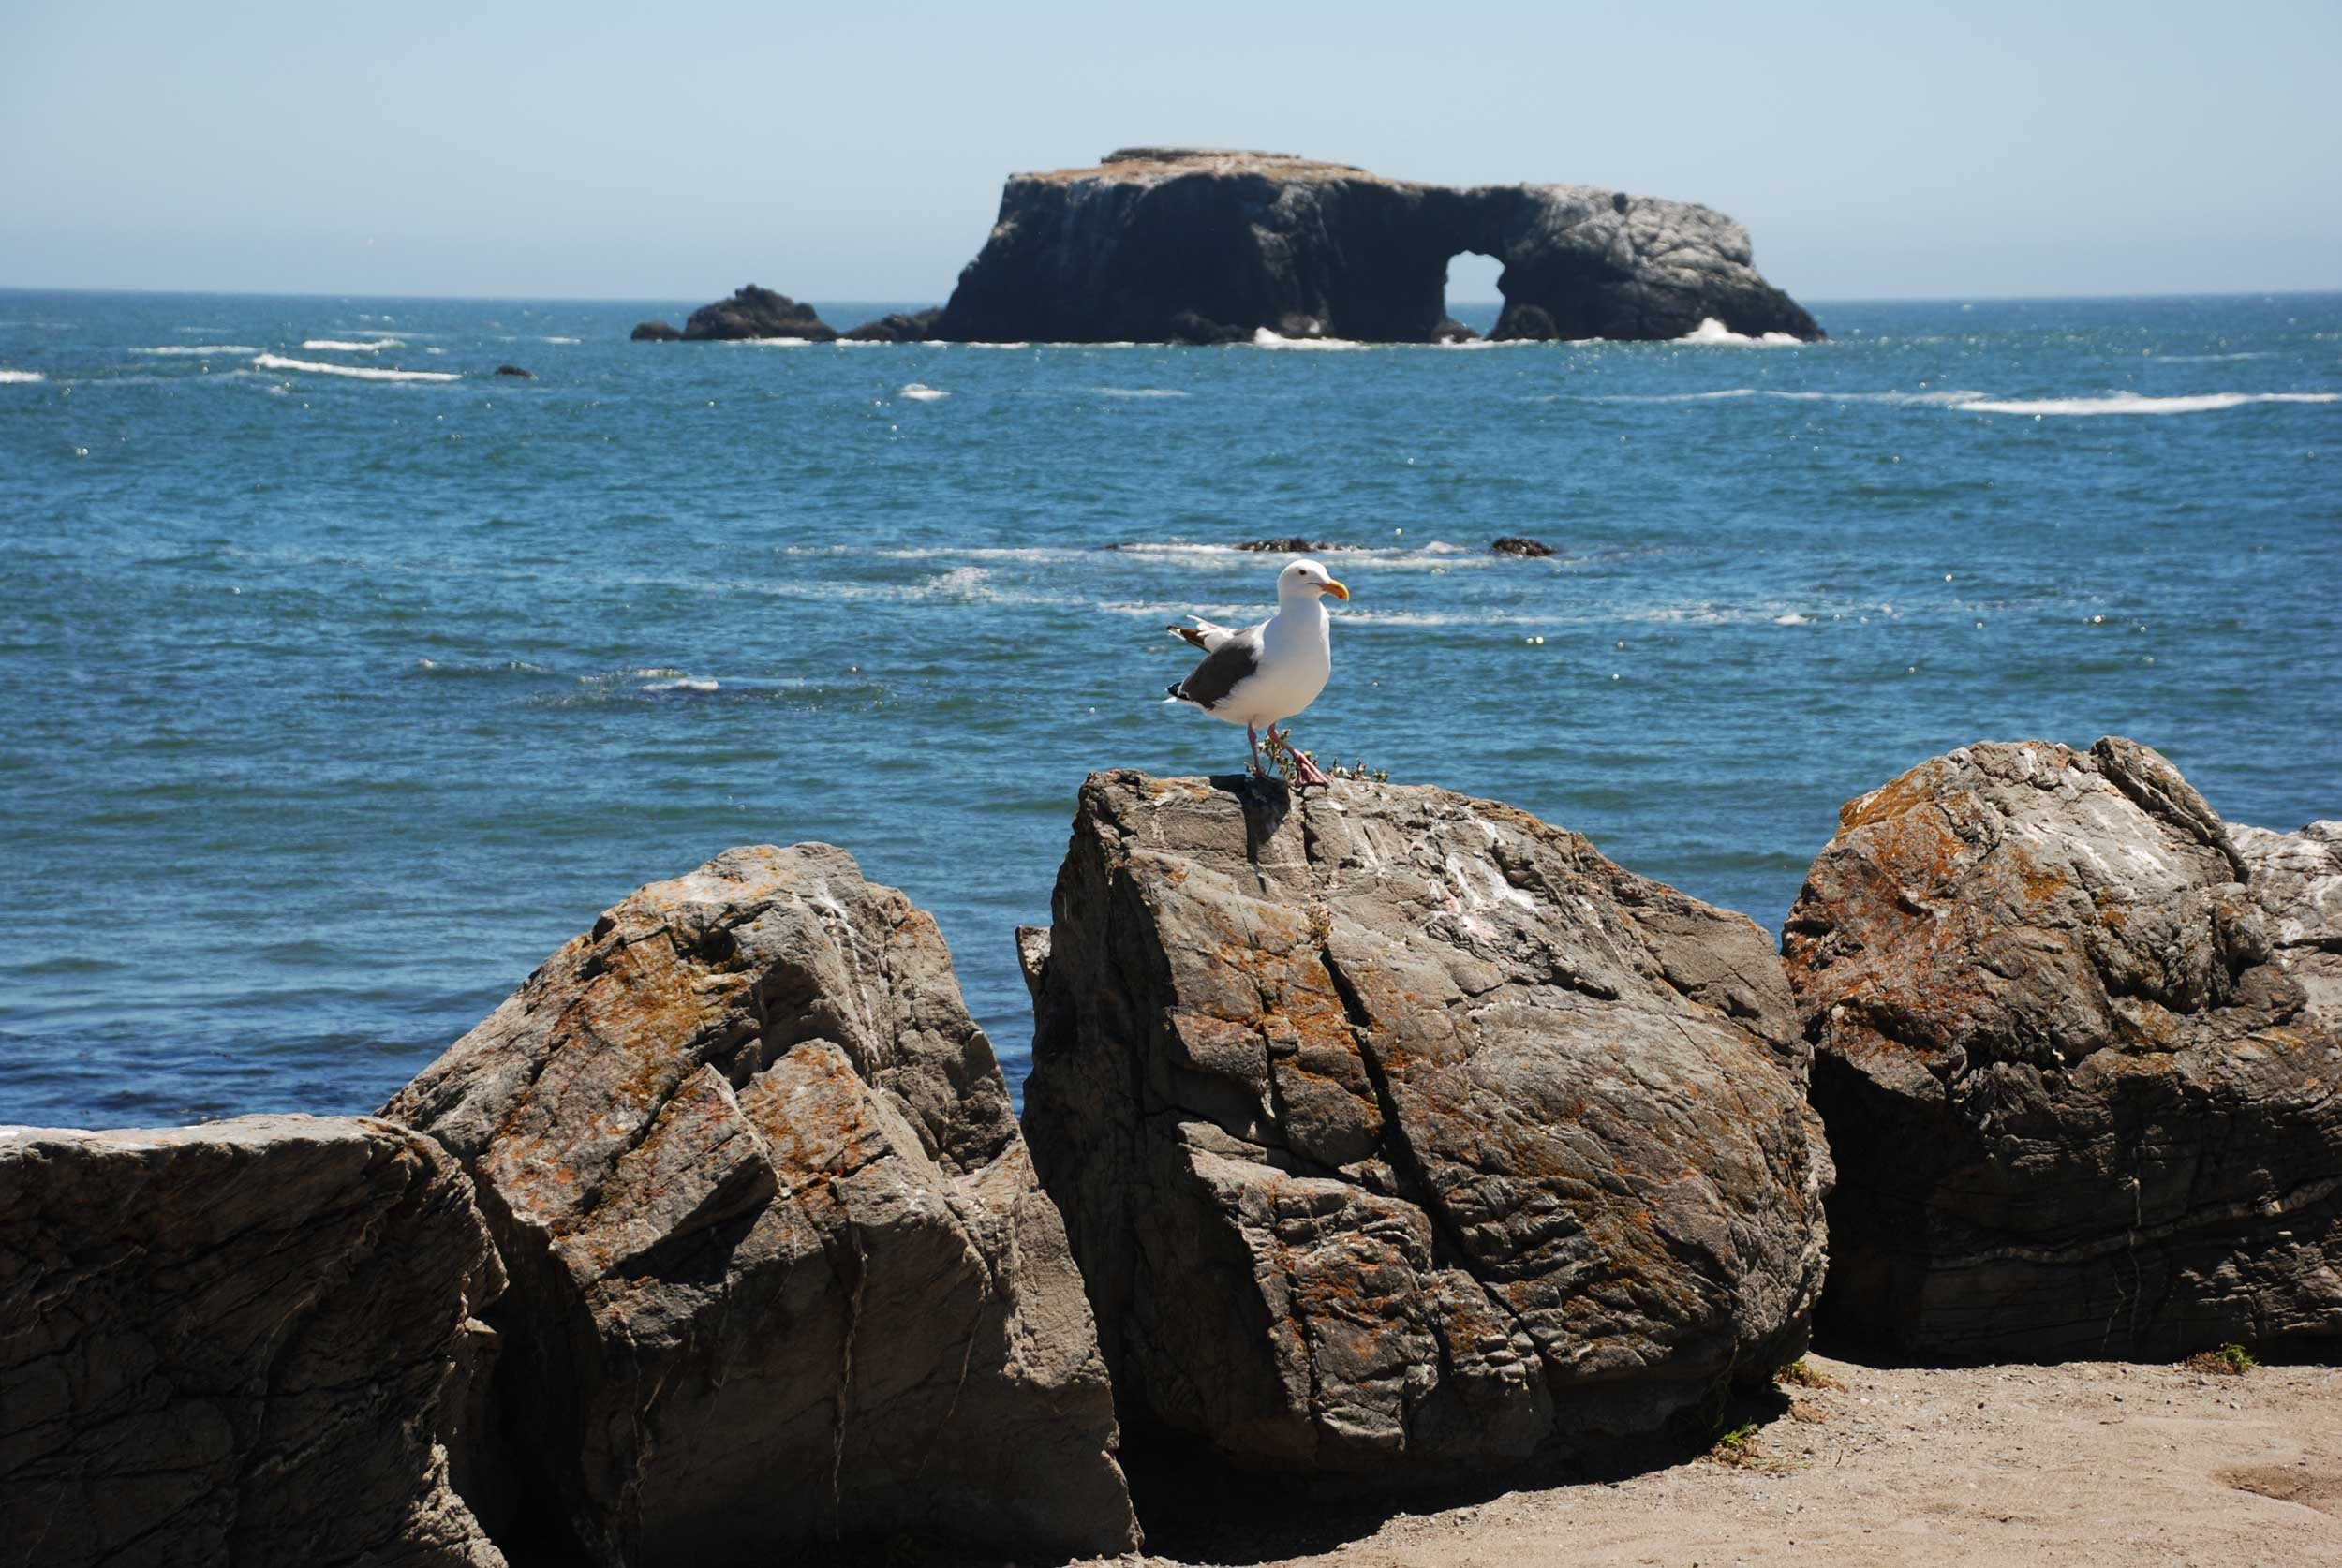 Gull standing on a rock with the sea and another rocky outcrop in the background, Sonoma County